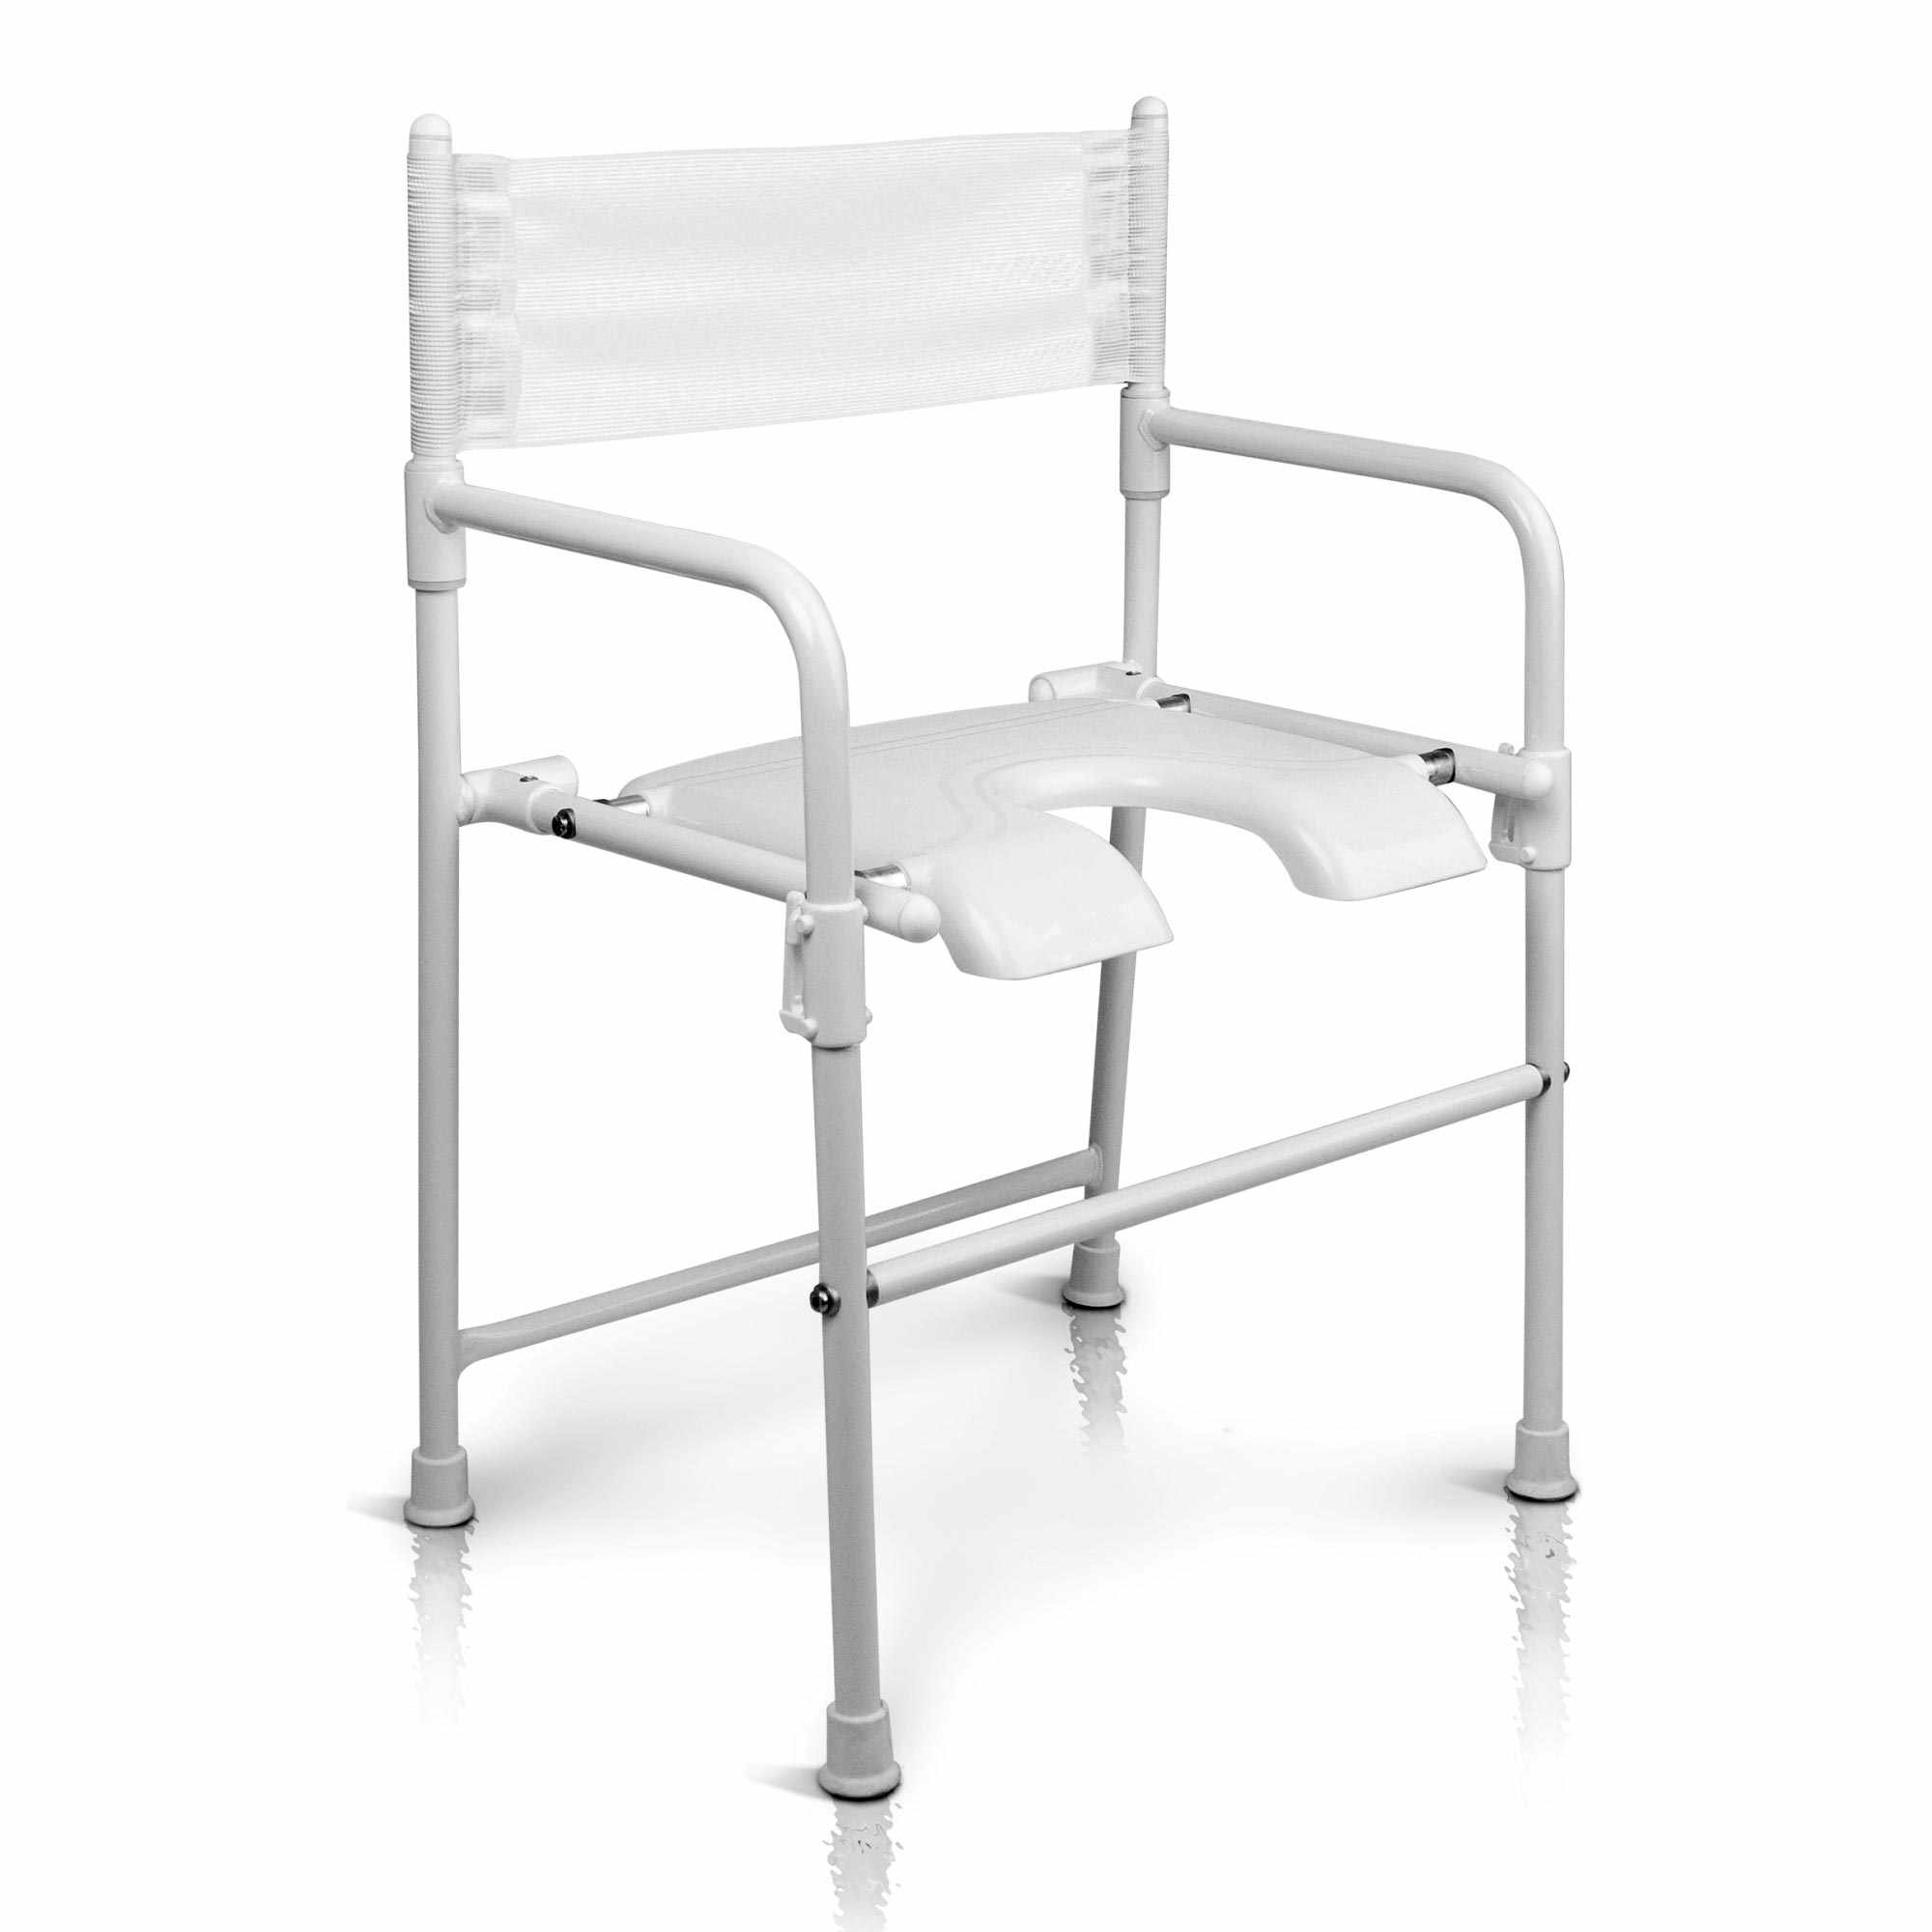 Etac Rufus Plus shower chair